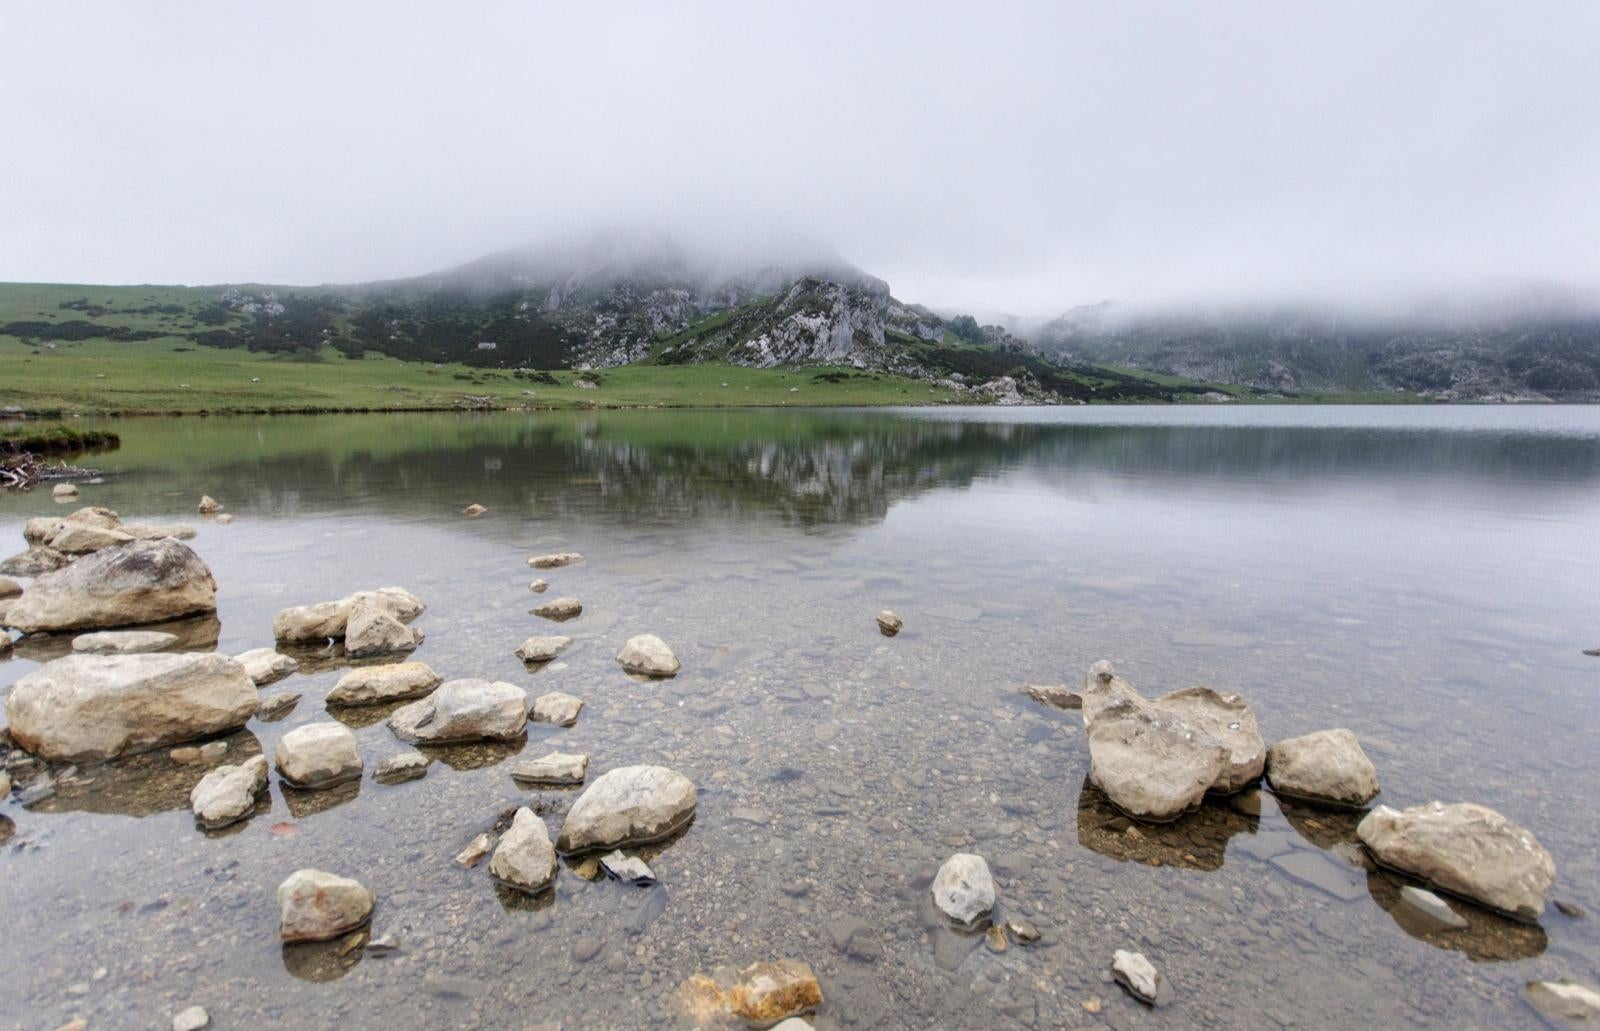 Shore in The Lakes of Covadonga - Enol and Ercina lakes